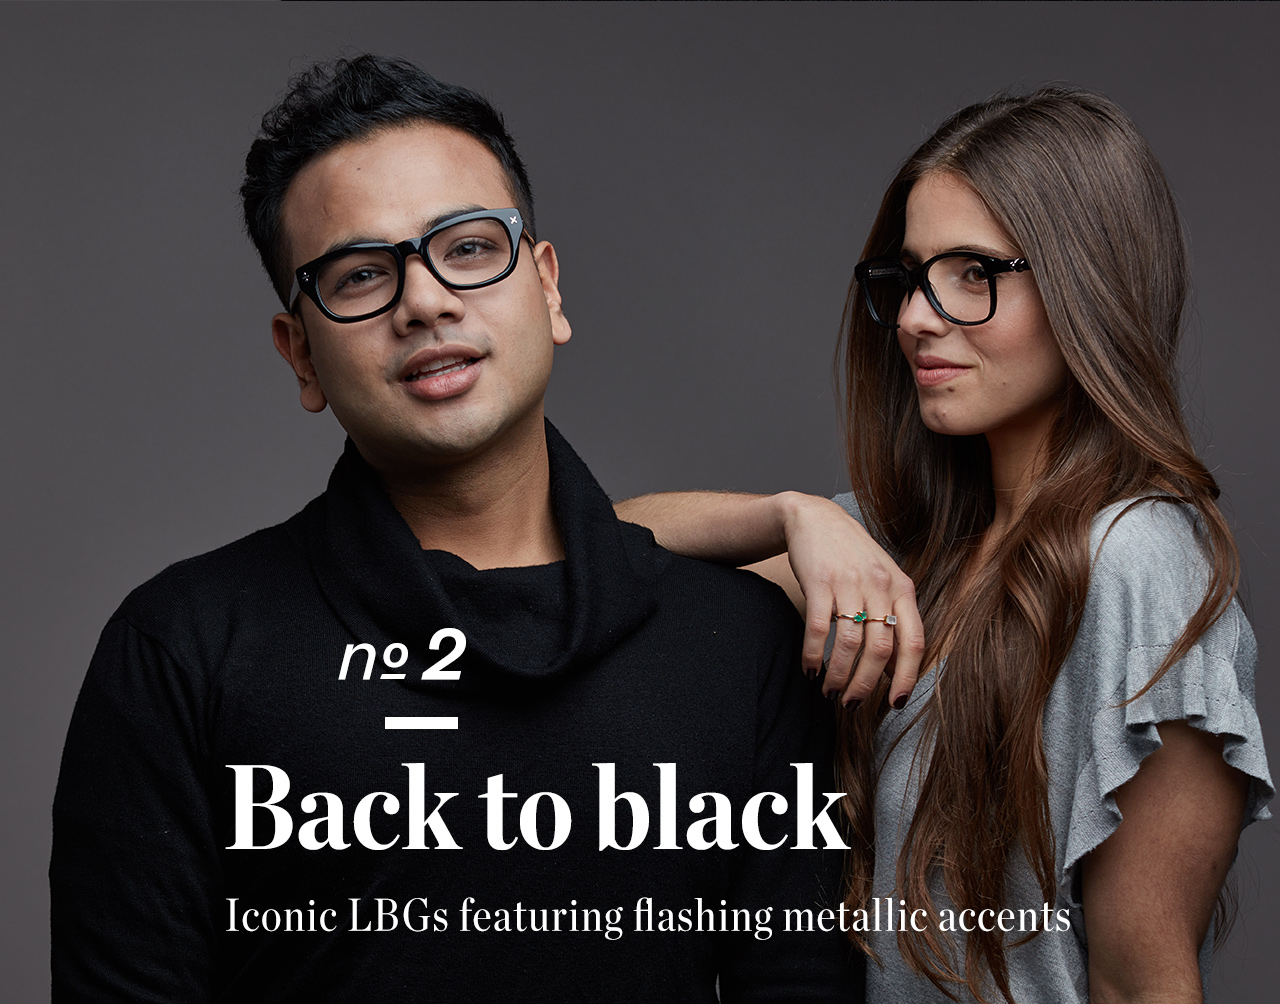 Back to black: Iconic LBGs featuring flashing metallic accents